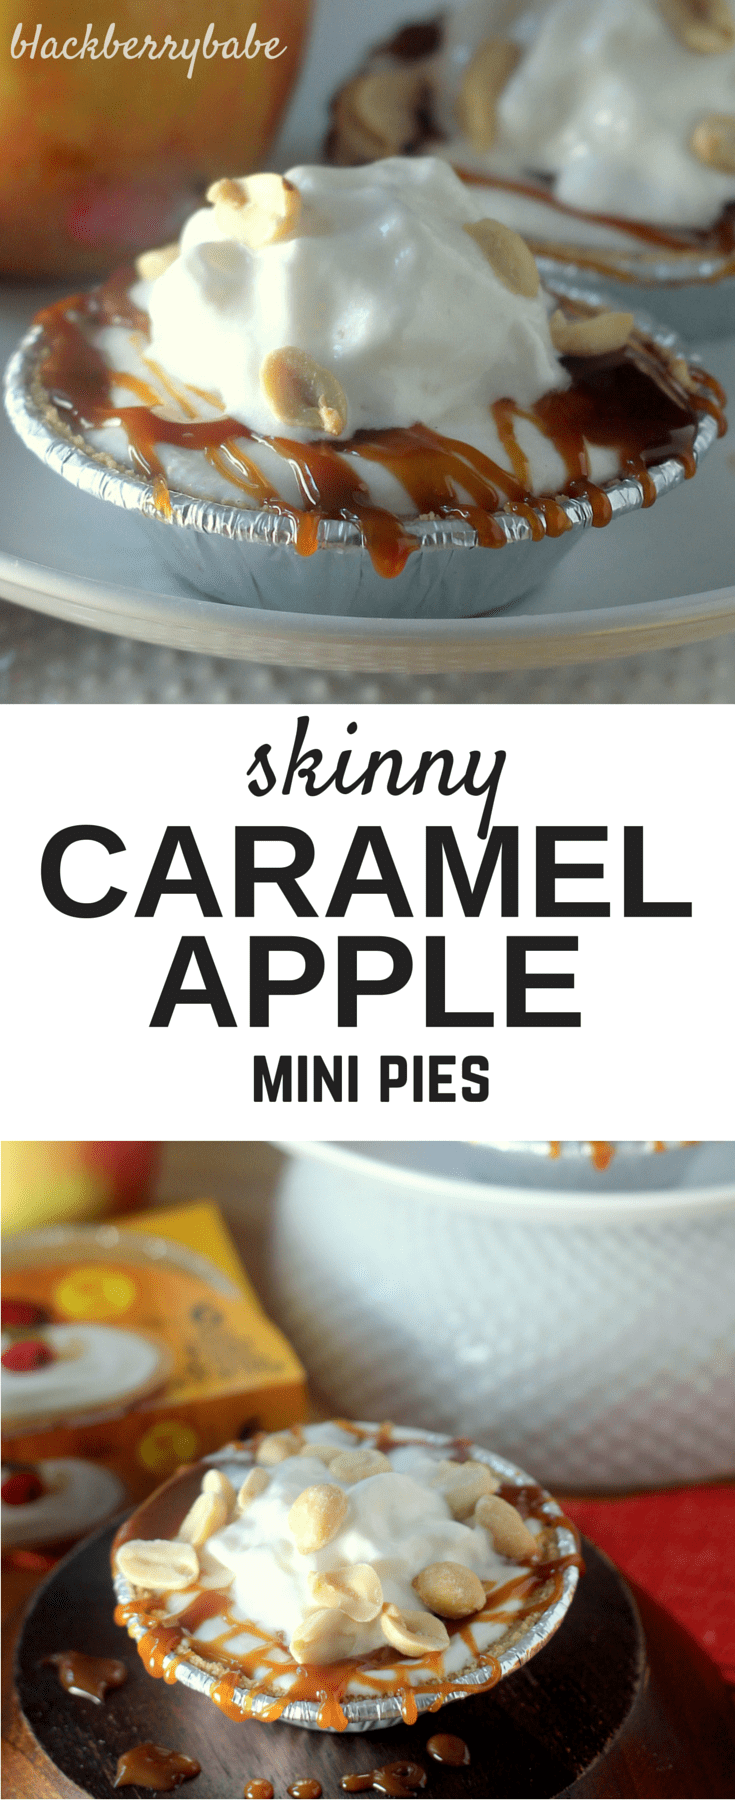 Skinny Caramel Apple Mini Pies